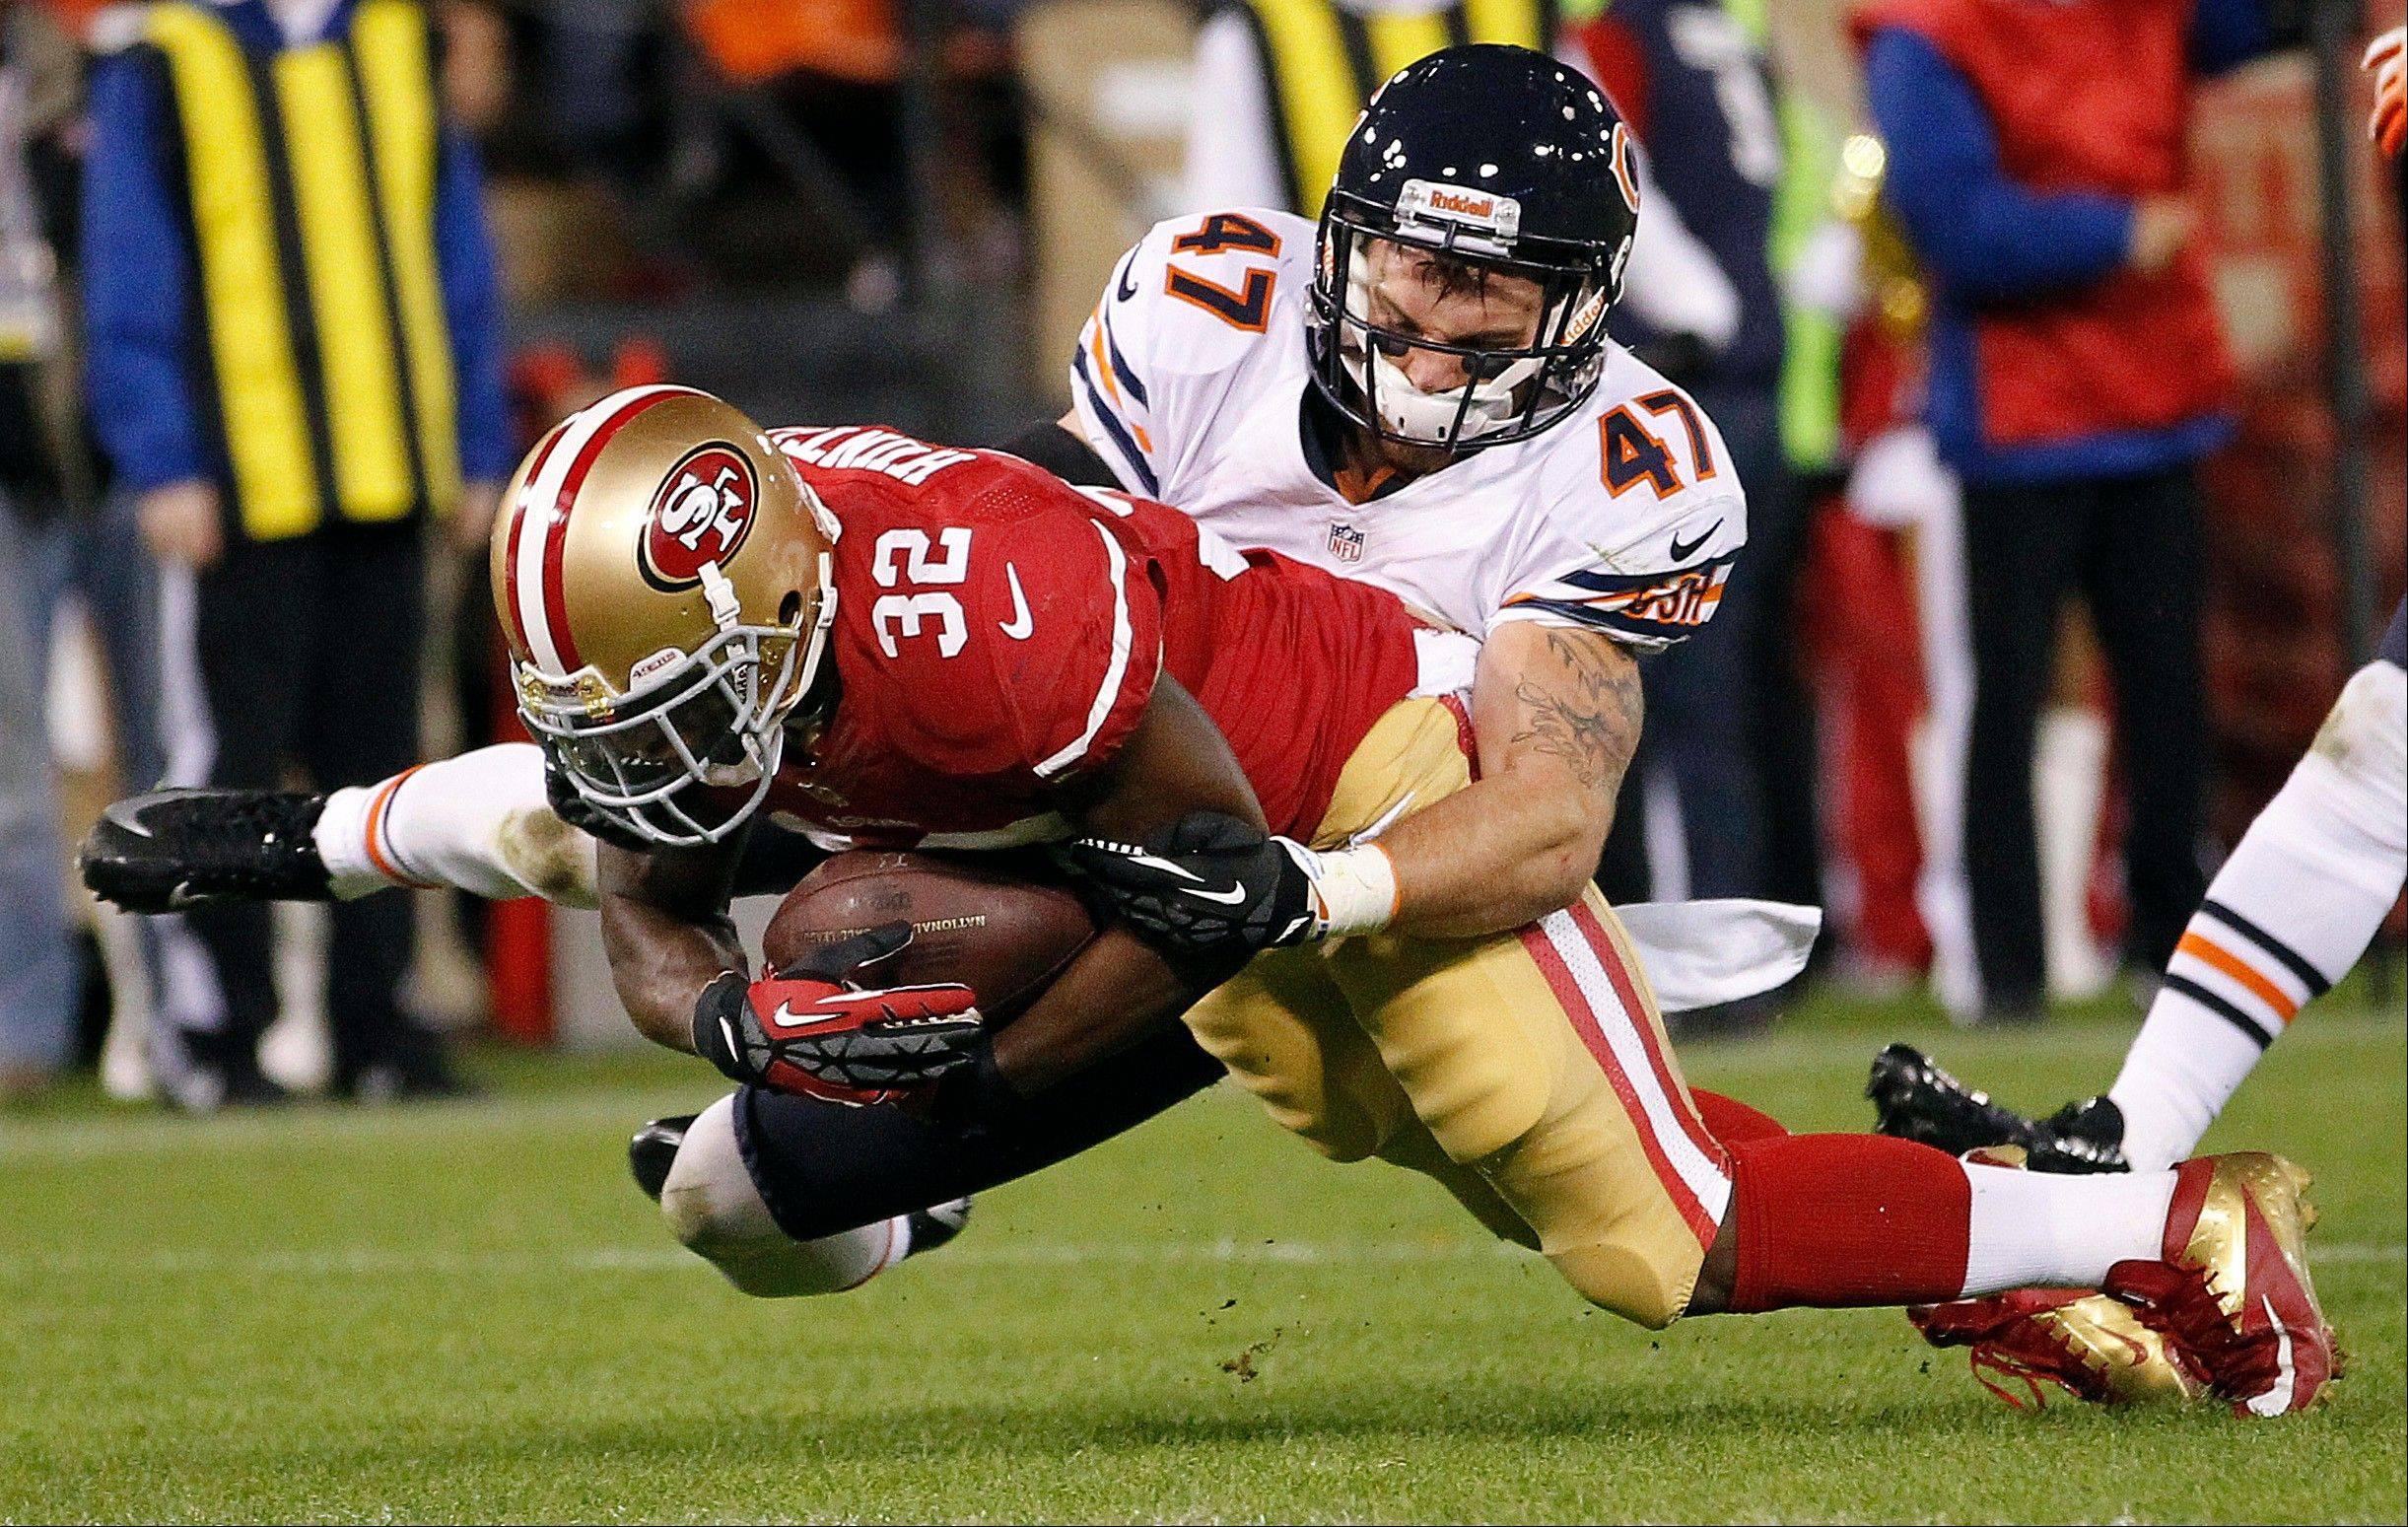 San Francisco 49ers running back Kendall Hunter scores on a 14-yard touchdown run past Chicago Bears free safety Chris Conte during the second quarter.